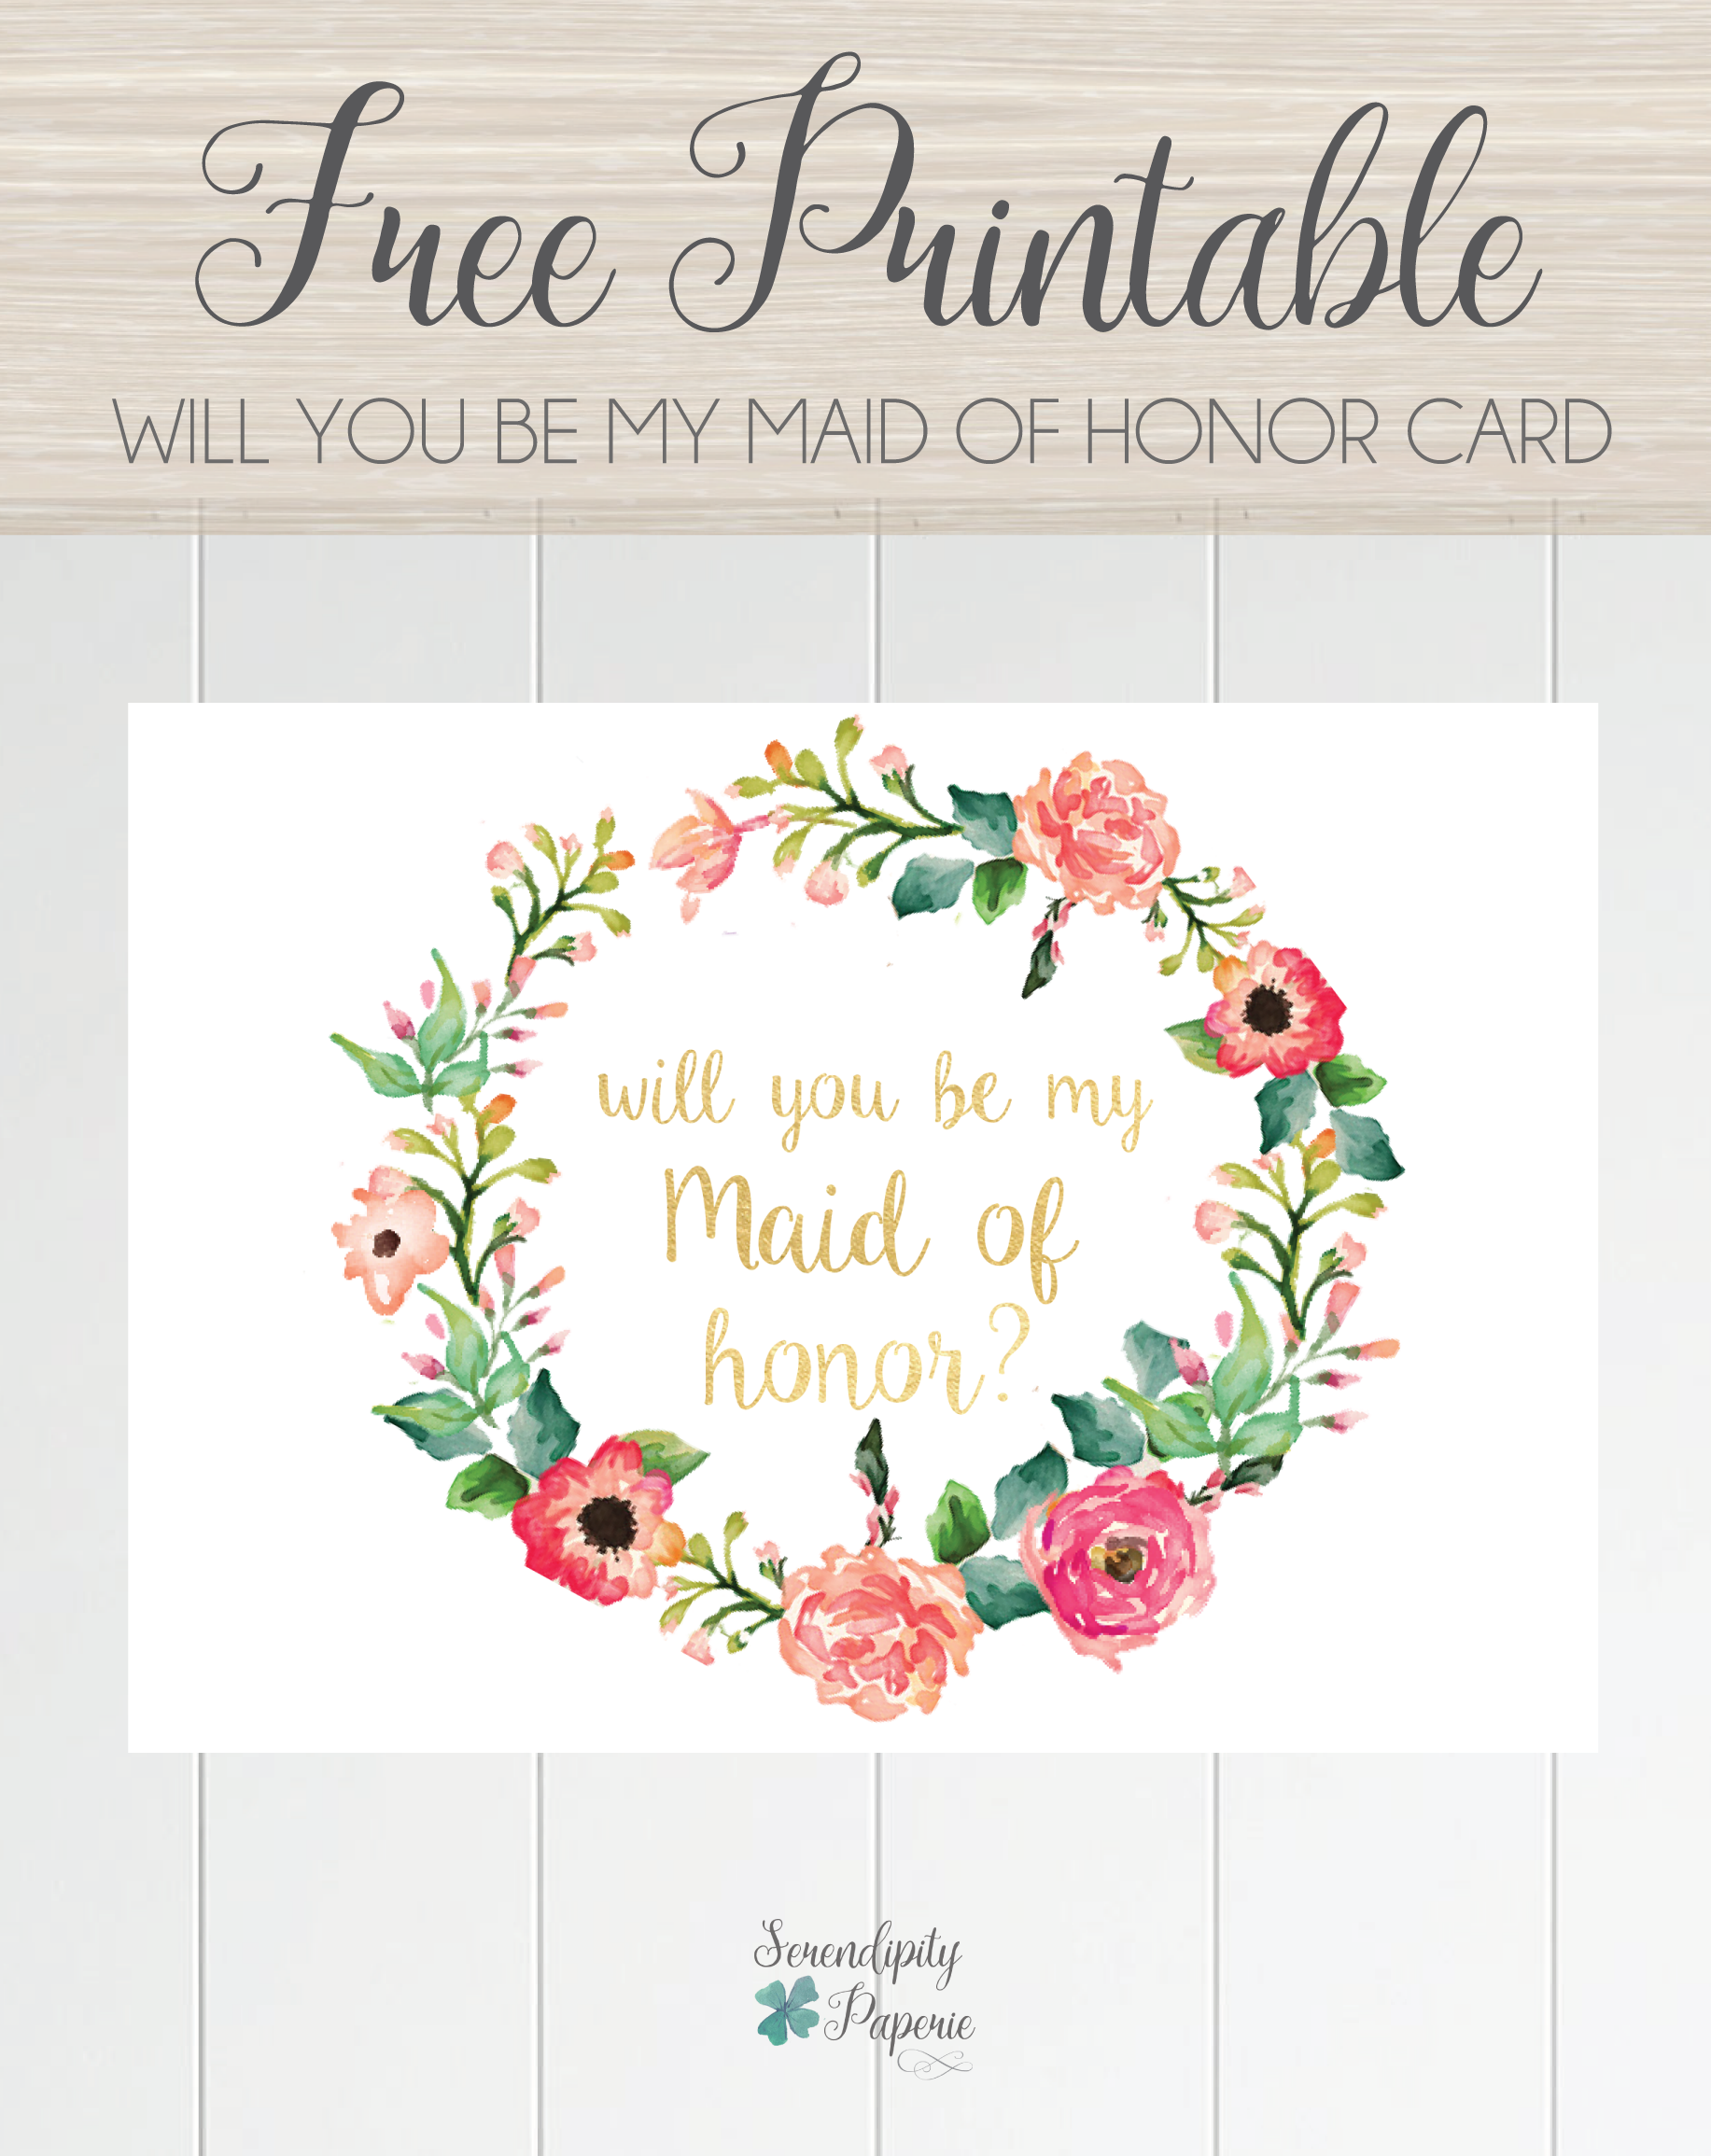 photograph about Will You Be My Bridesmaid Printable titled No cost printable will on your own be my maid of honor card, floral